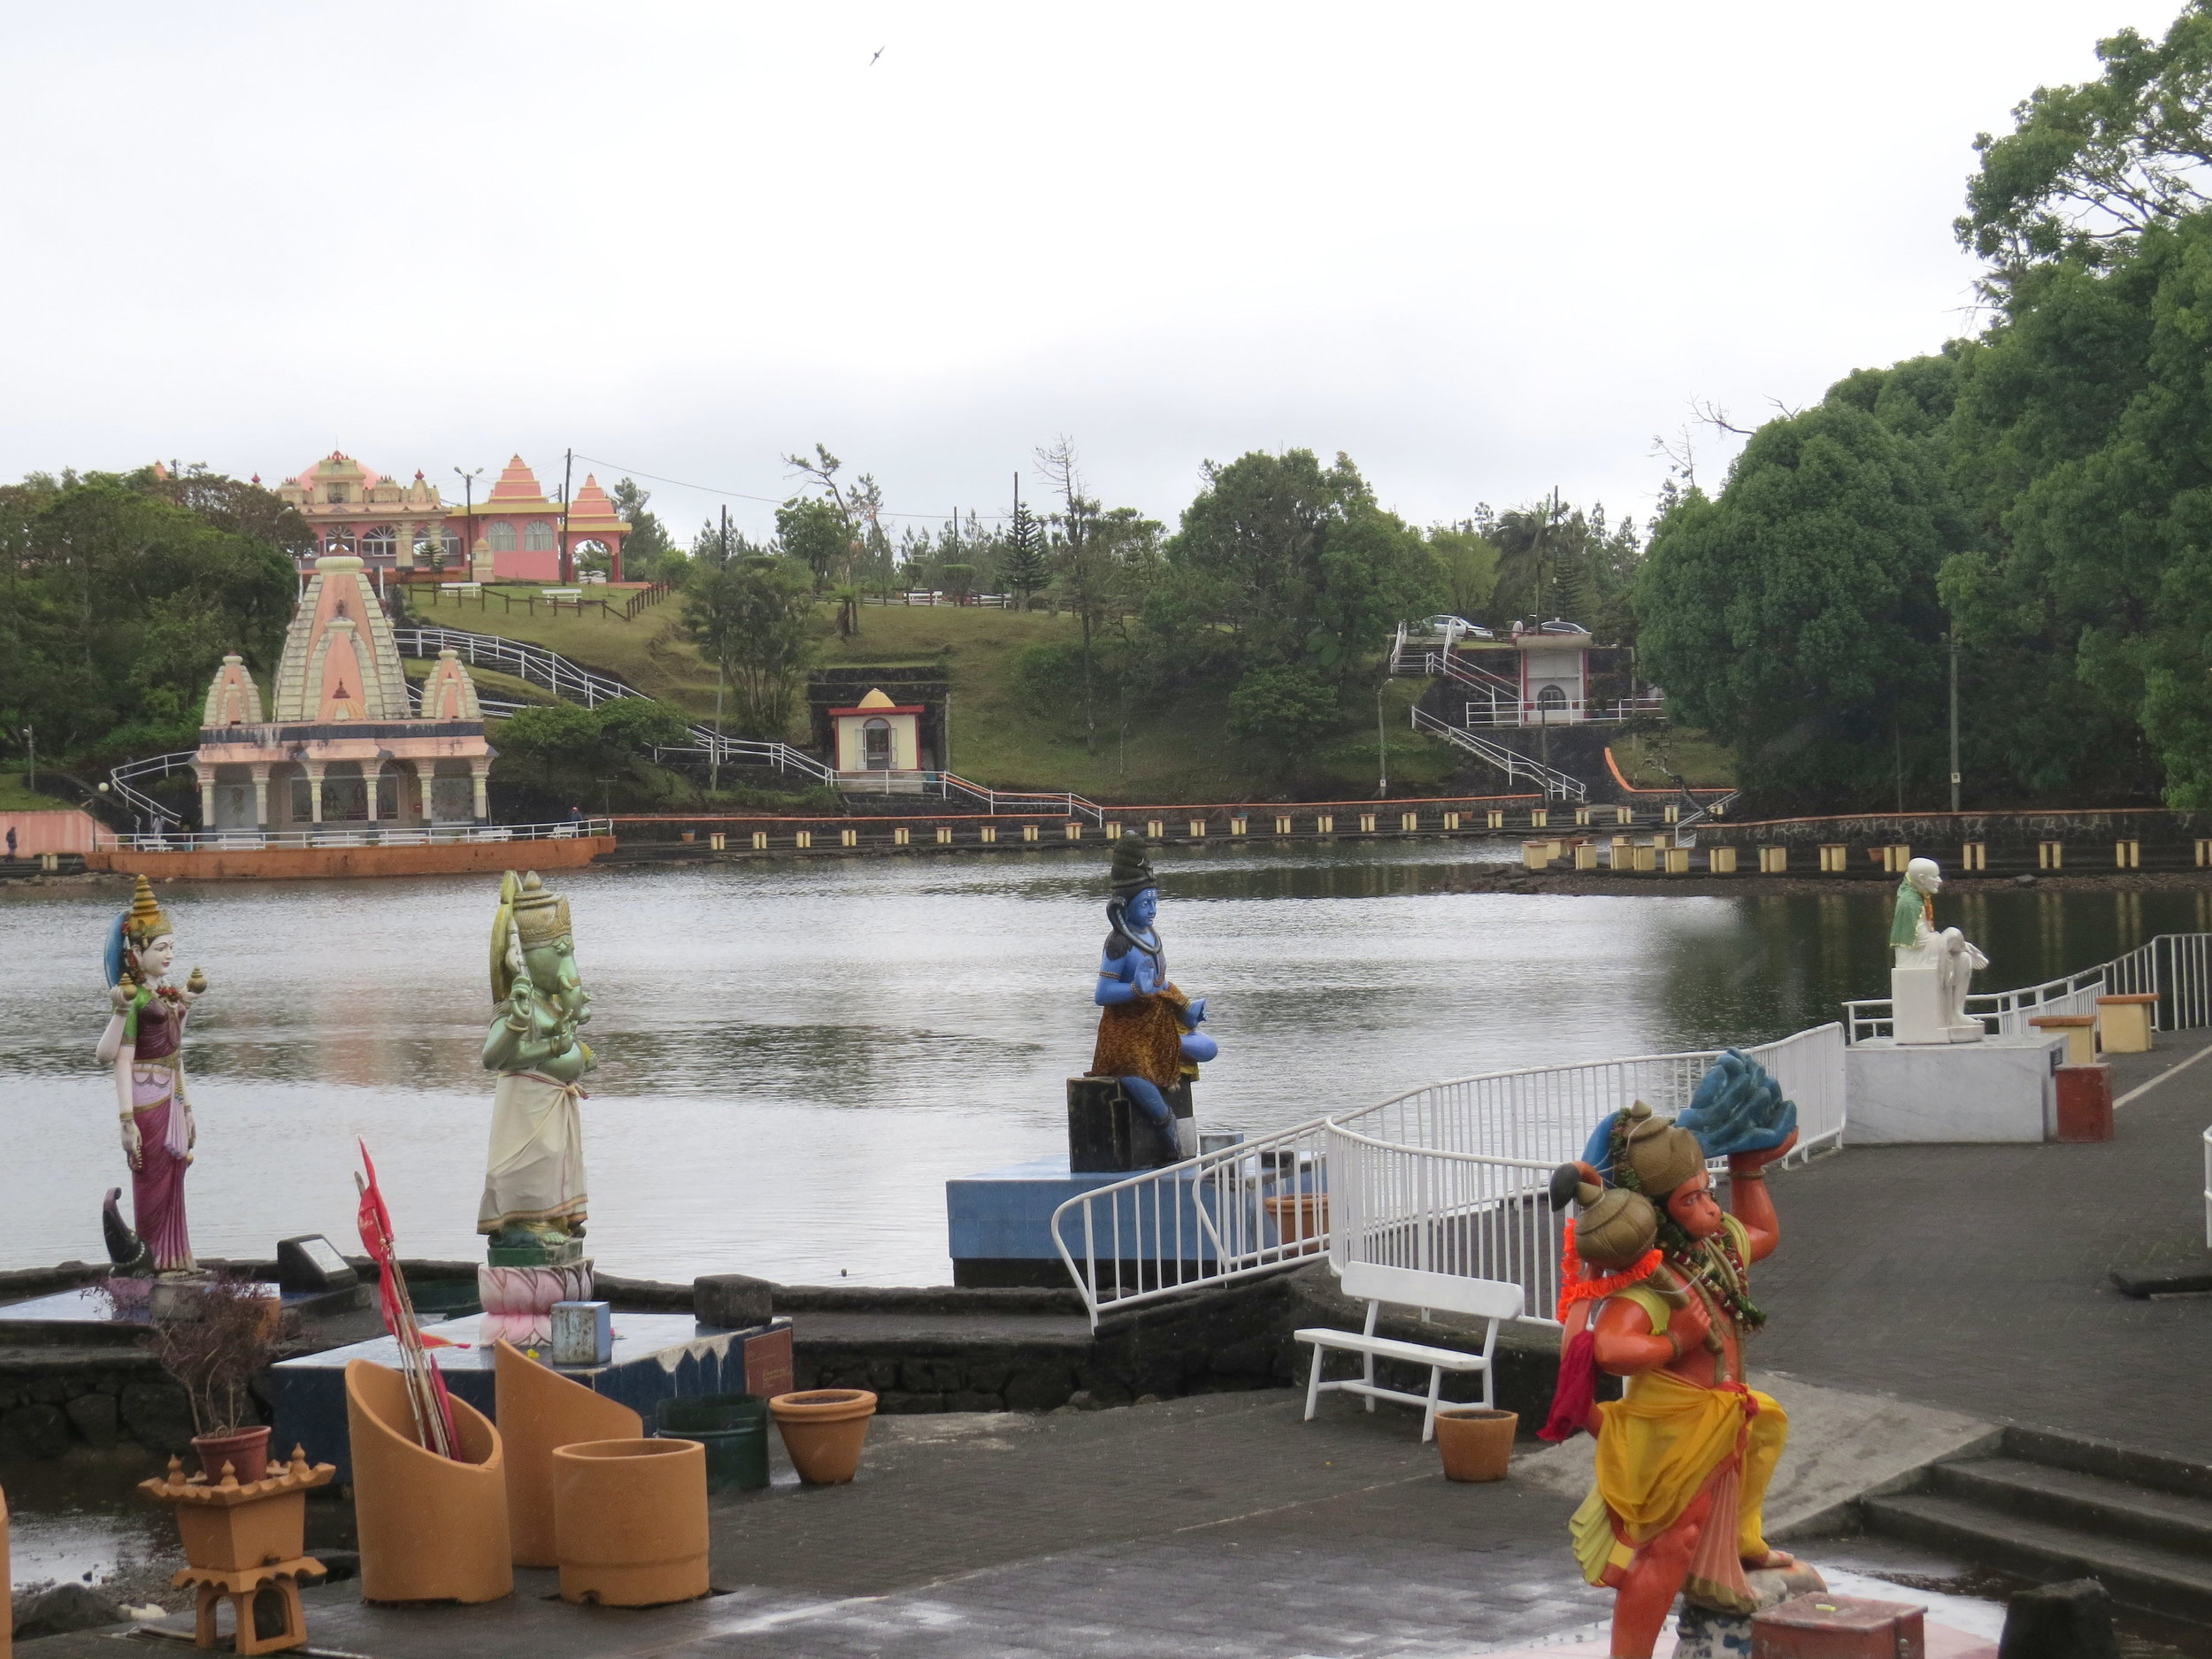 We walked along the lake and came to what we determined was the main temple. There were large statues of Hindu deities scattered along the lake's edge, many with offerings at their feet.